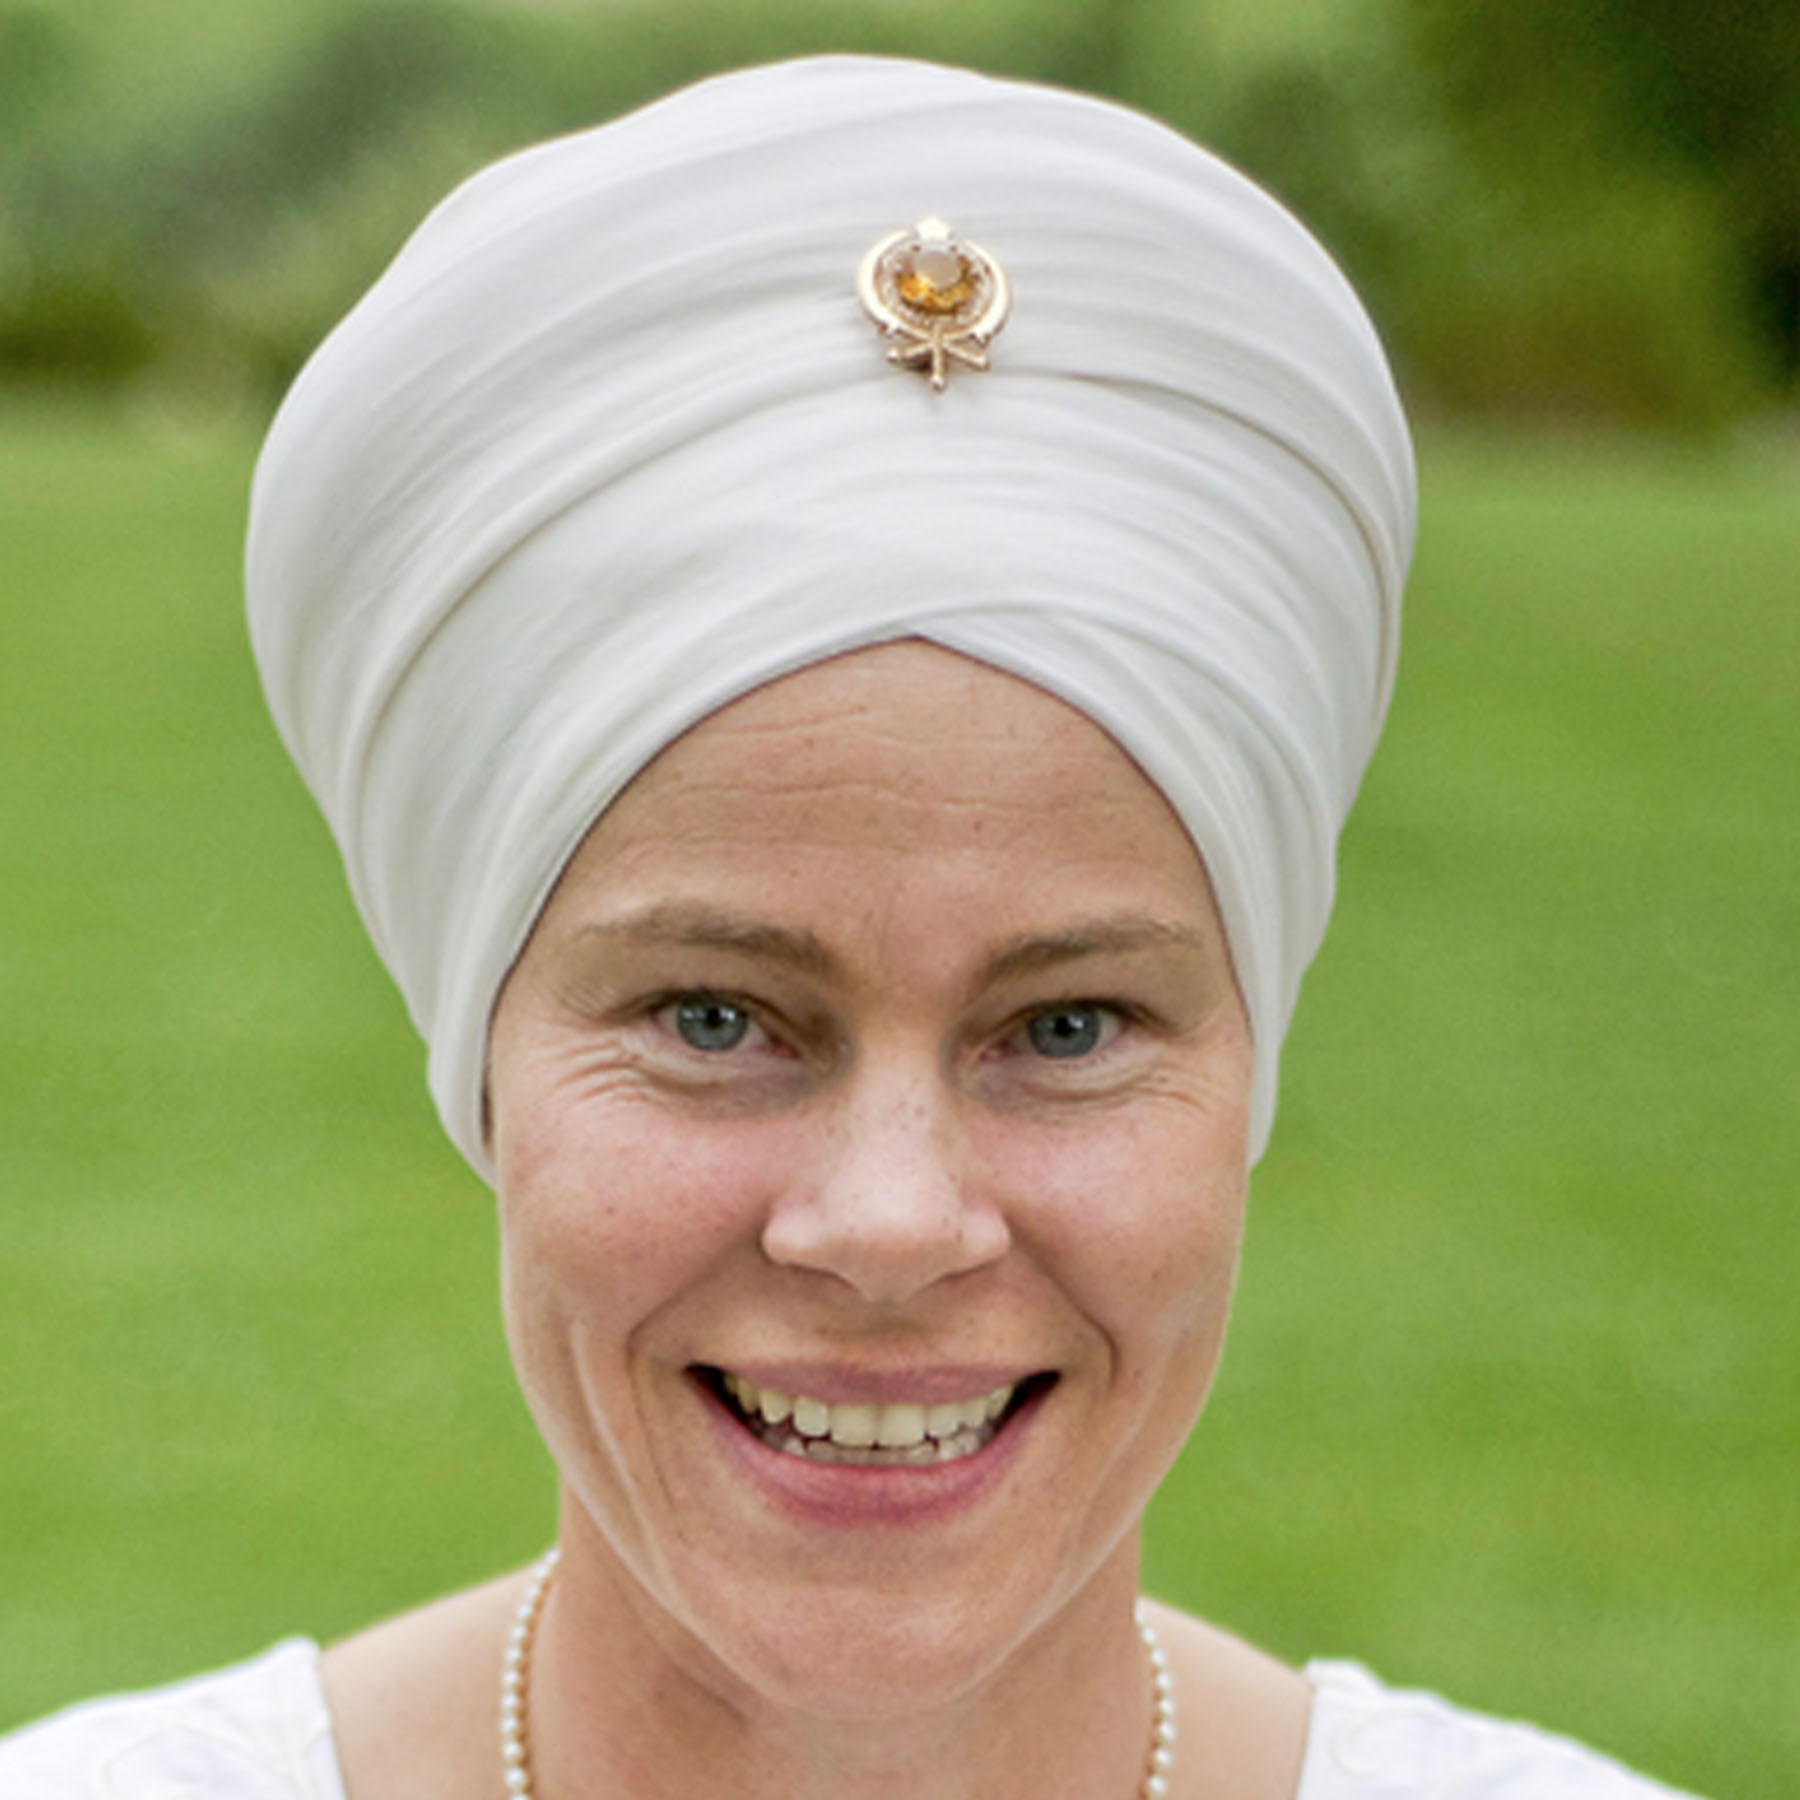 Dr. Japa Kaur Khalsa (Professional)   is the co-author of the textbook Enlightened Bodies; Exploring Physical and Subtle Human Anatomy. She is a Doctor of Oriental Medicine combining traditional acupuncture with herbal and nutritional medicine, numerology and energy healing. She travels and teaches as an International Kundalini Yoga Teacher Trainer and inspirational speaker. As a second generation physician she has a special passion to help the current healthcare crisis by helping people to awaken their own internal ability to self heal and to train professionals how yoga and meditation work.